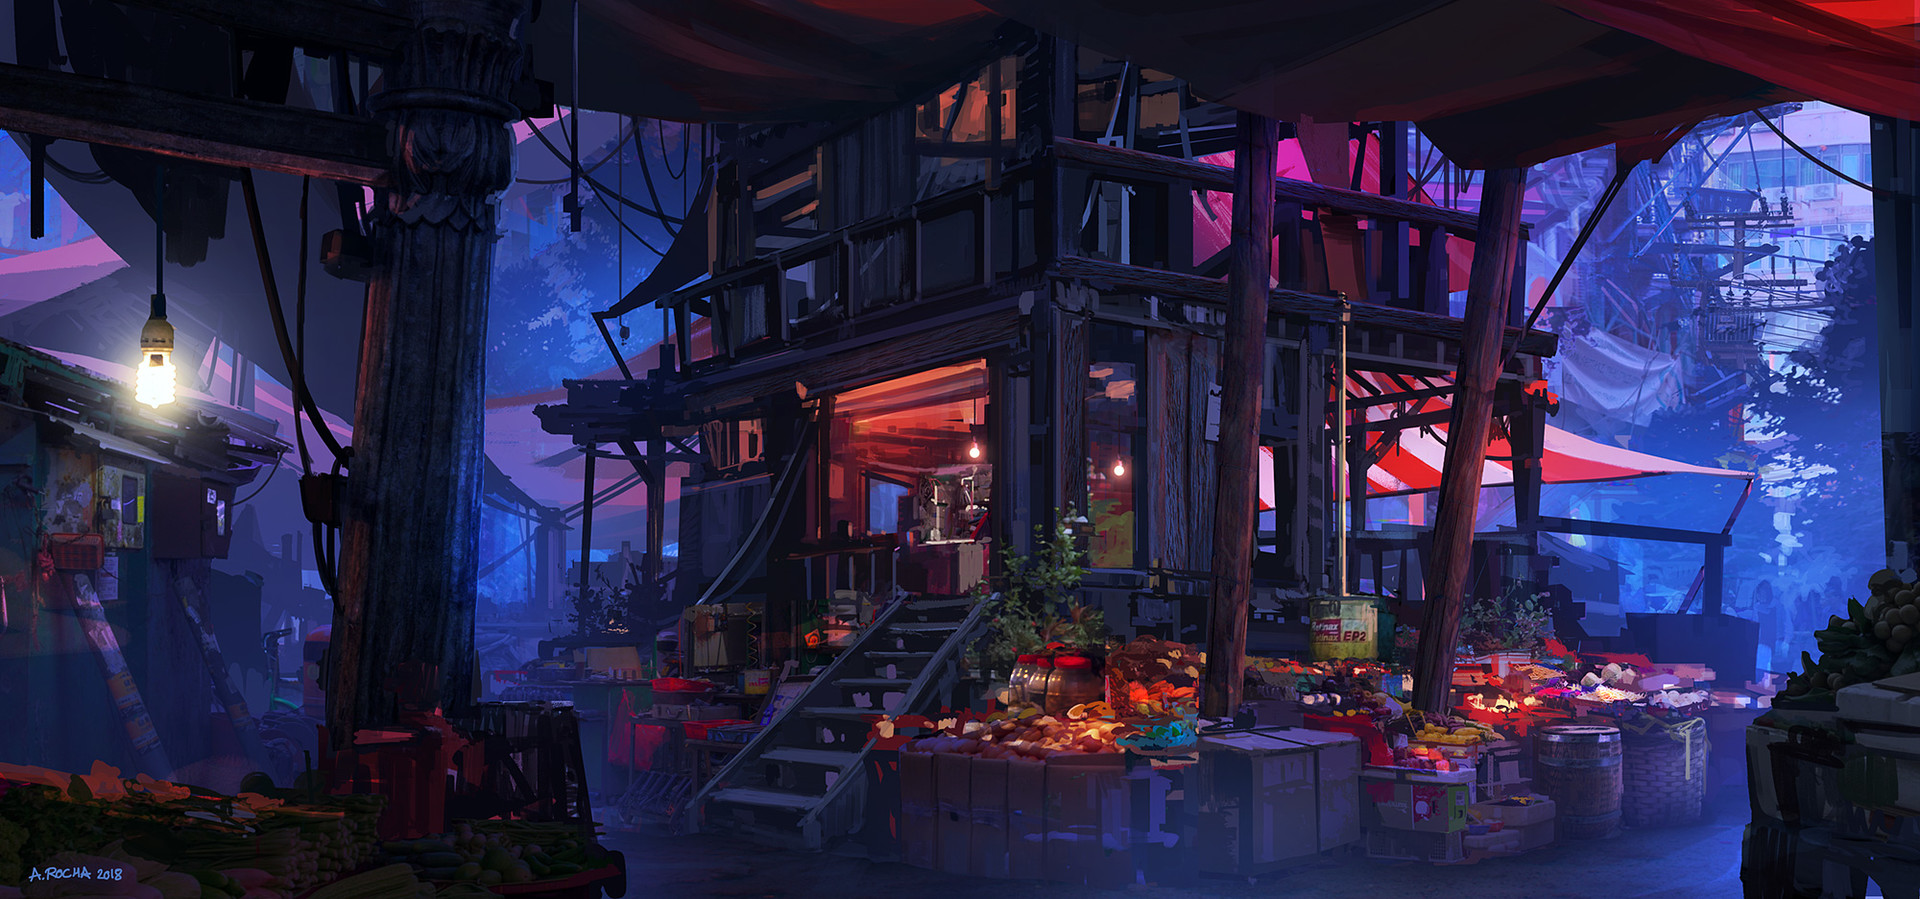 General 1920x899 Andreas Rocha artwork digital Market concept art